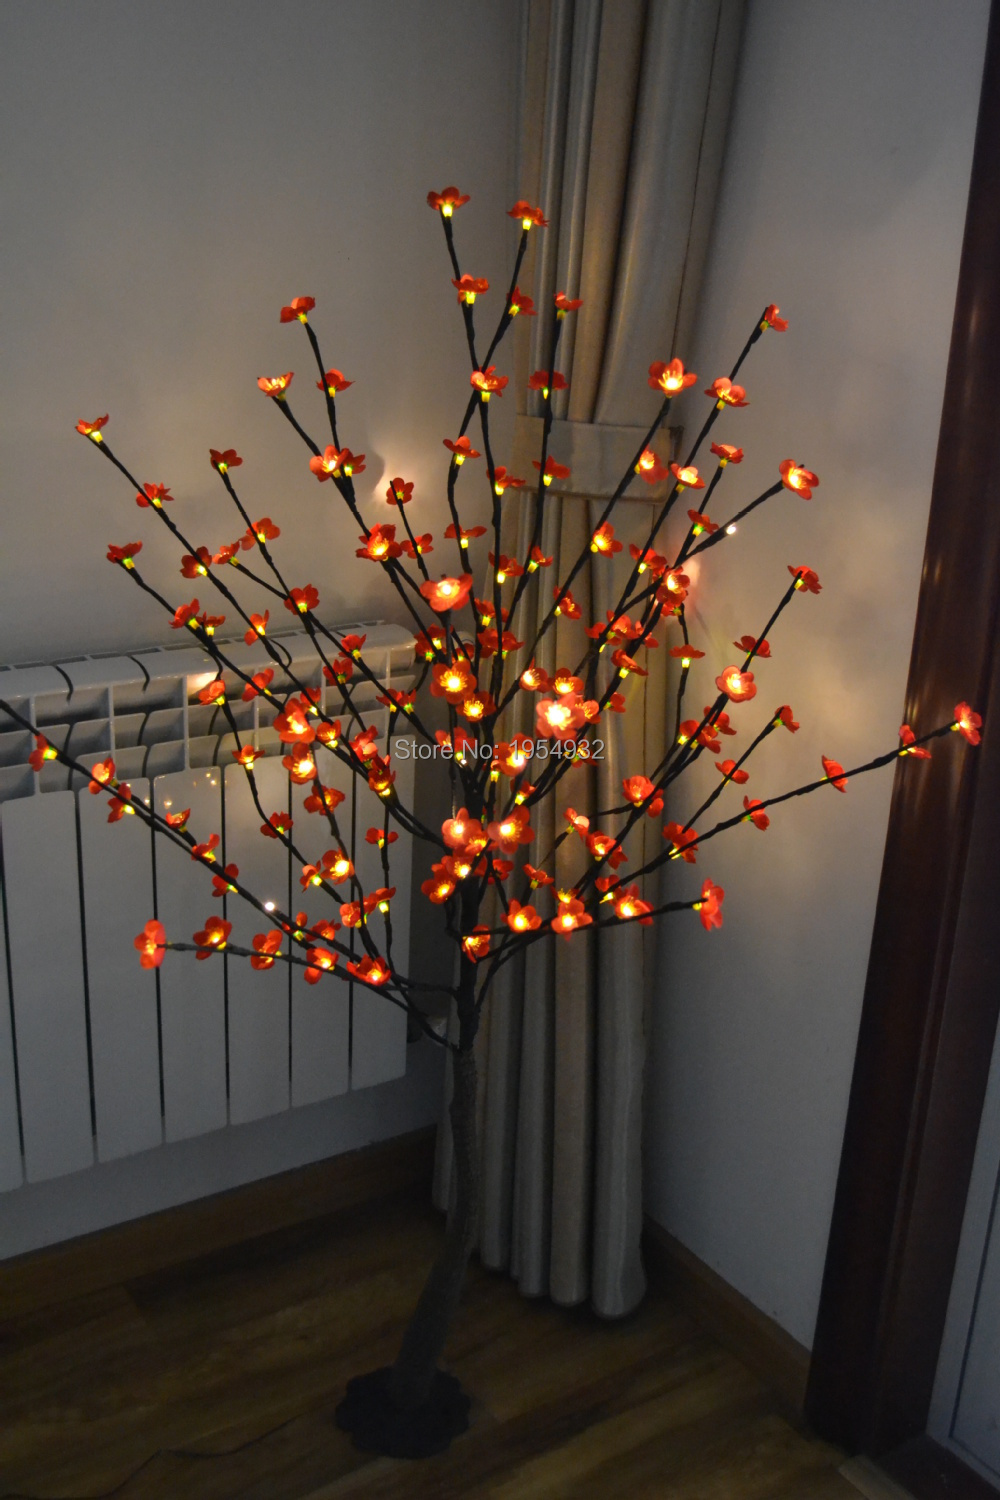 Free Shipping 52 160PCs Blossom Plum Cherry LED Tree Light in 3V Voltage With Base Branch